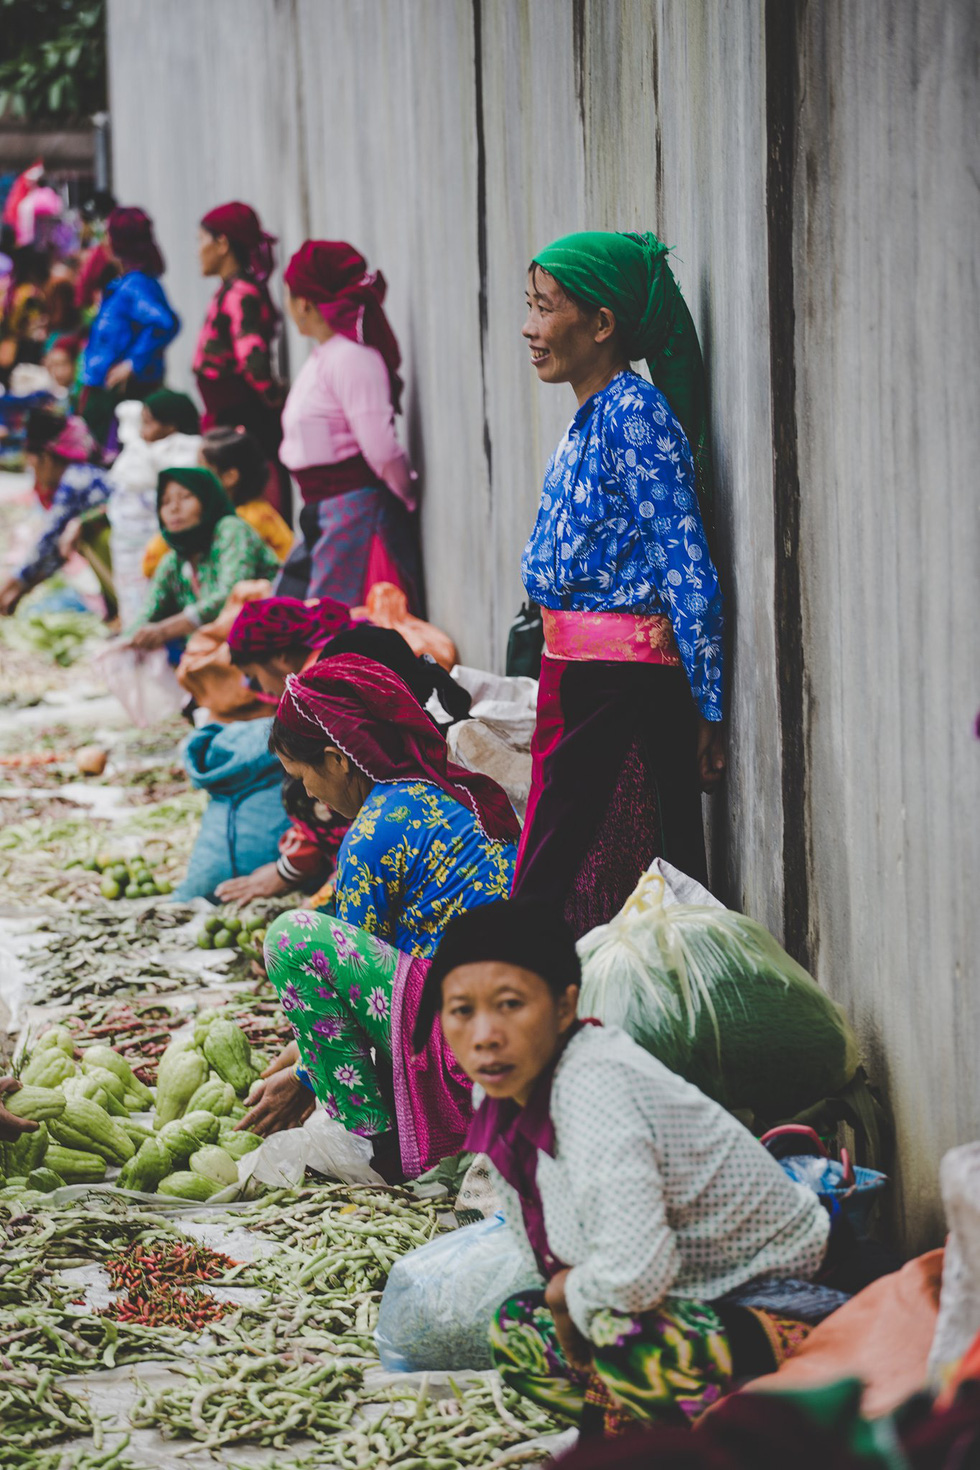 Women from ethnic minority groups are seen at a market in the northwest region of Vietnam. Photo by Thibault Clemenceau